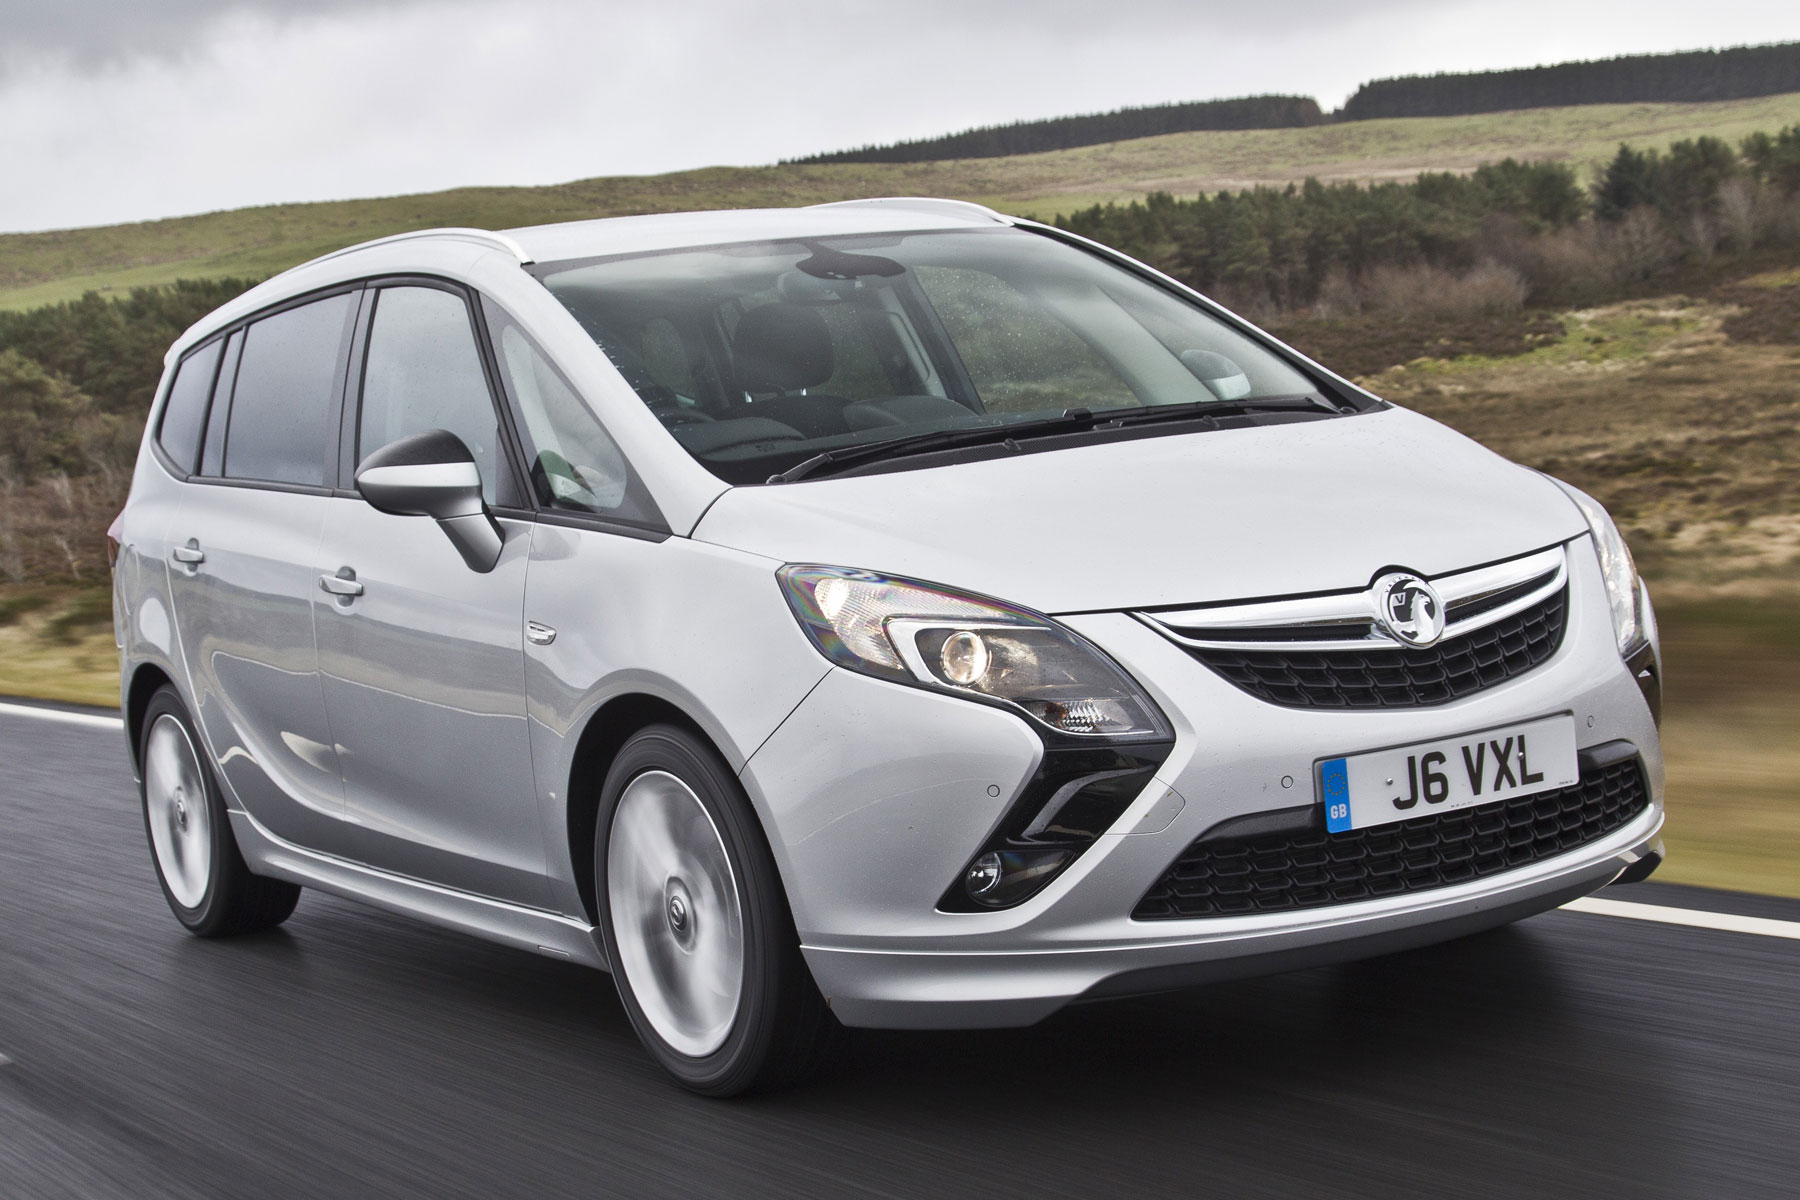 MPV prices are on the up –and it's all thanks to Uber